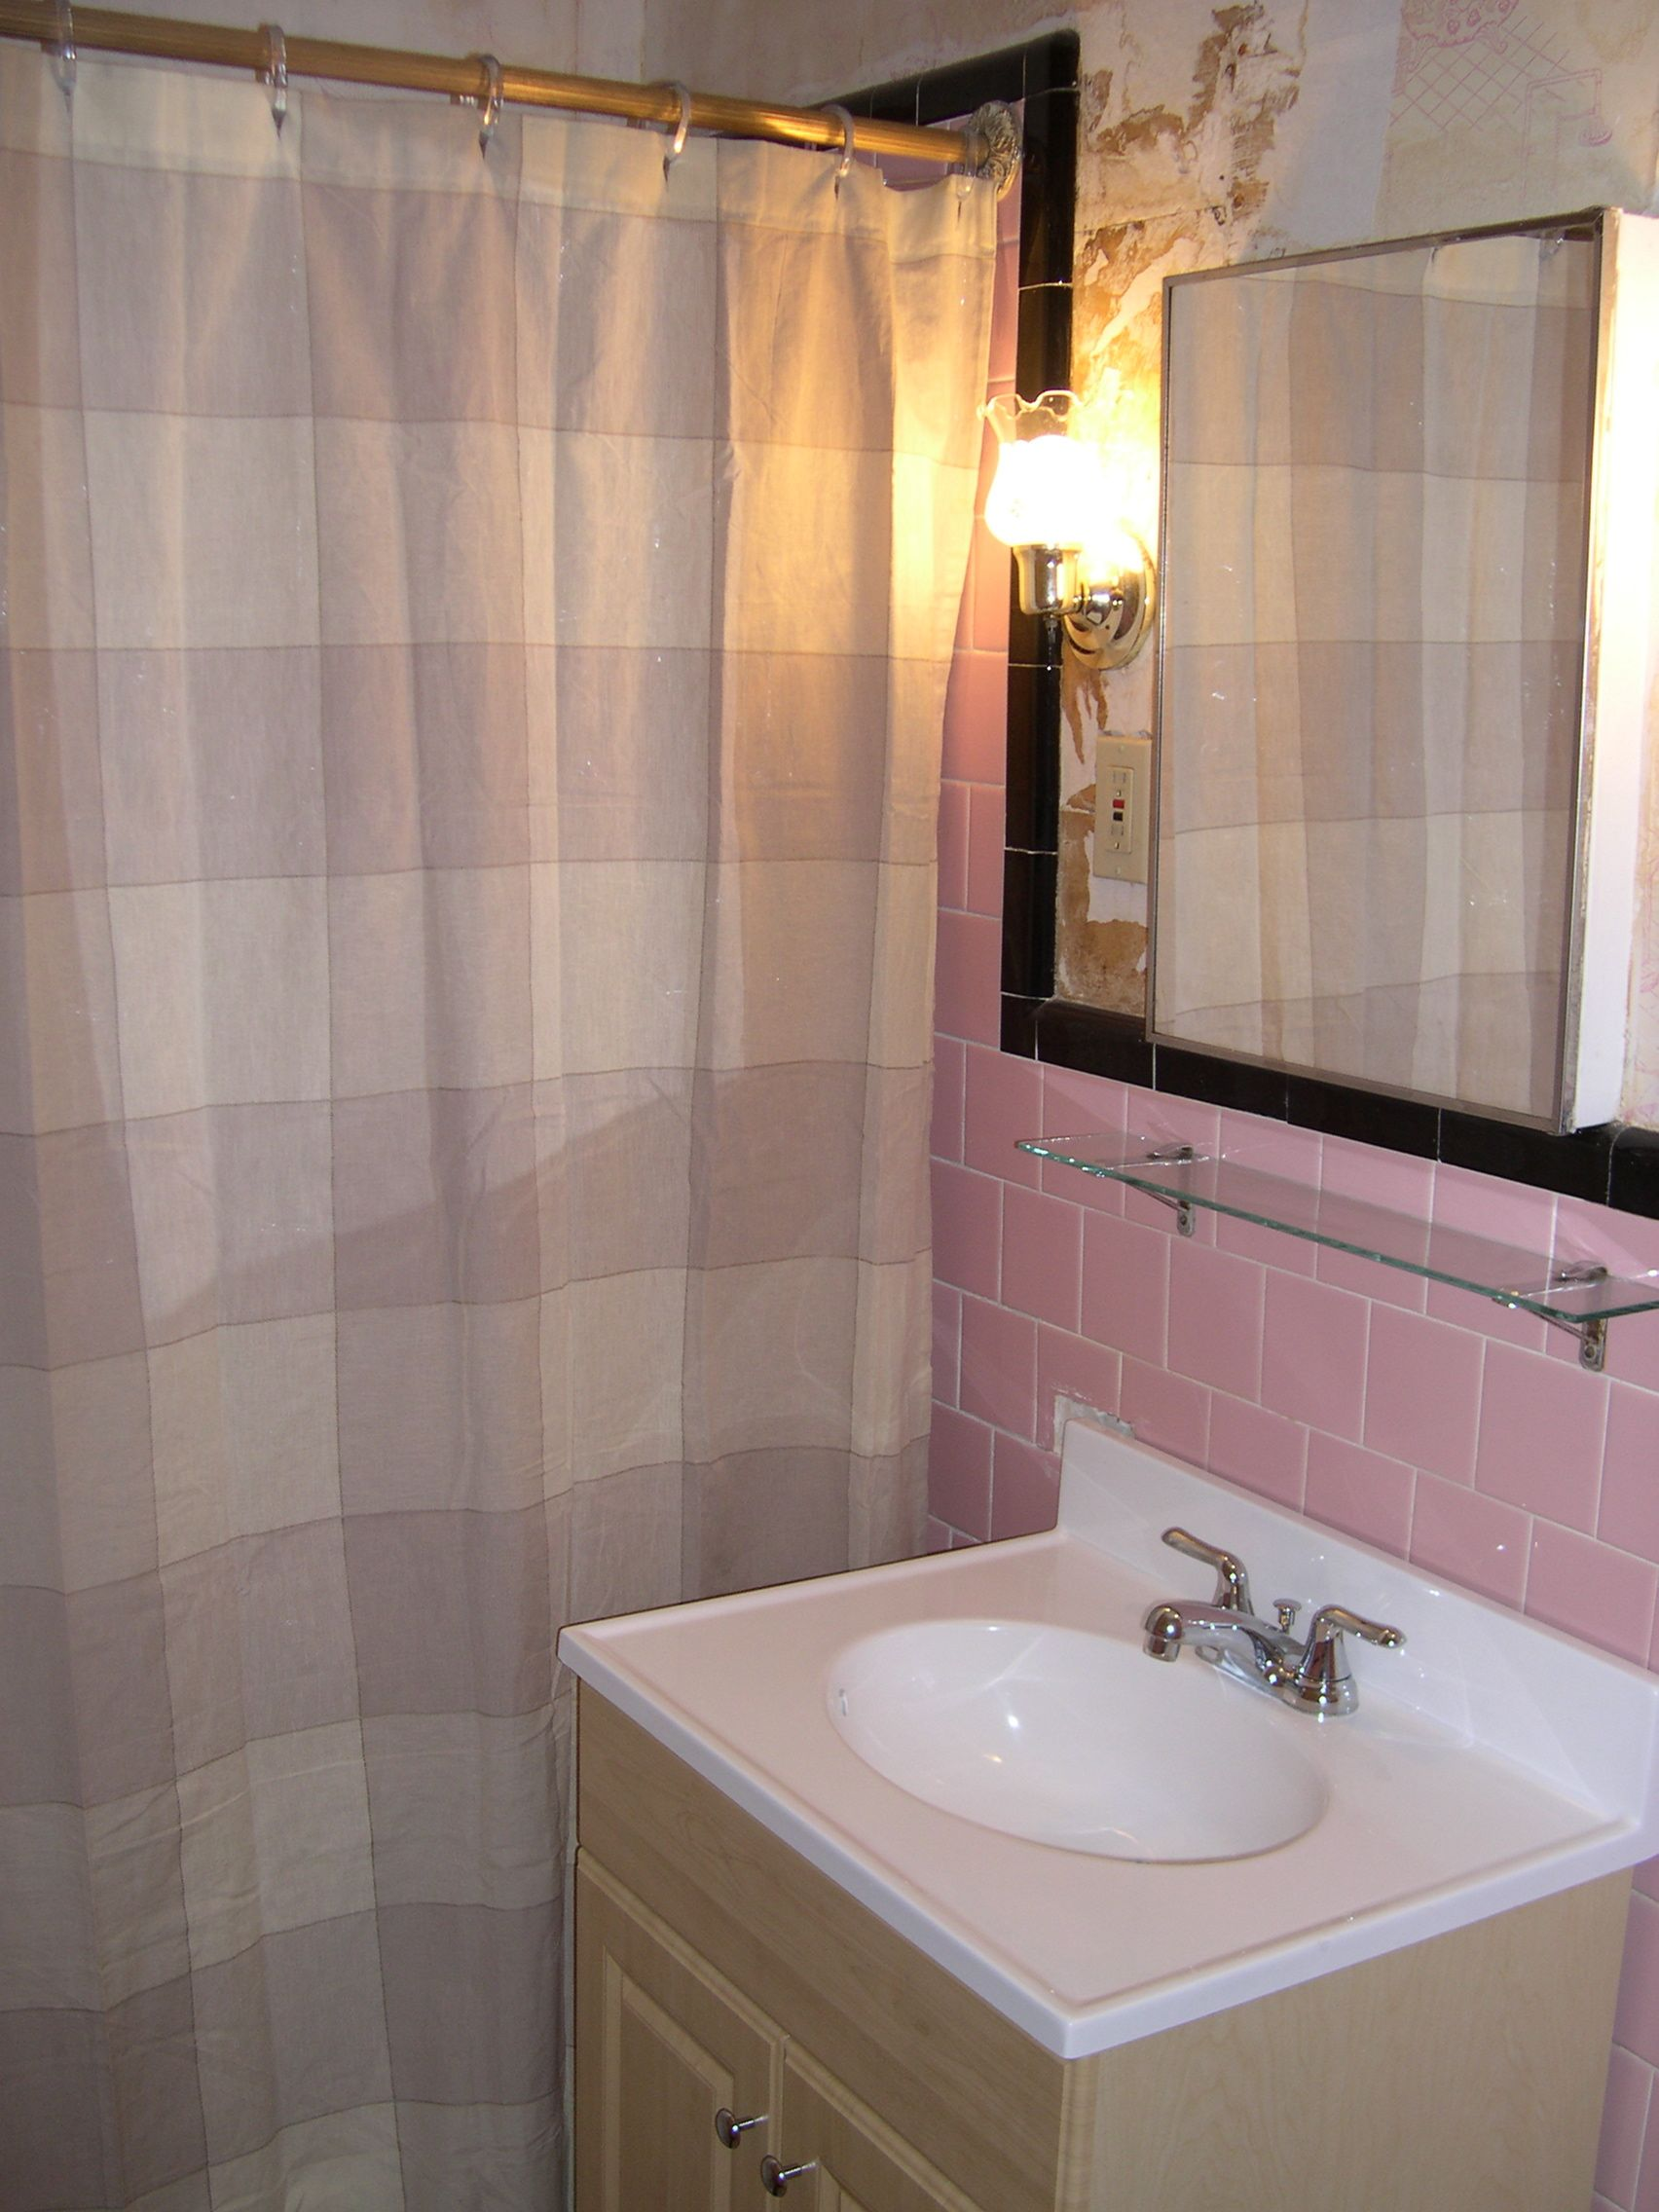 40 vintage pink bathroom tile ideas and pictures 2020